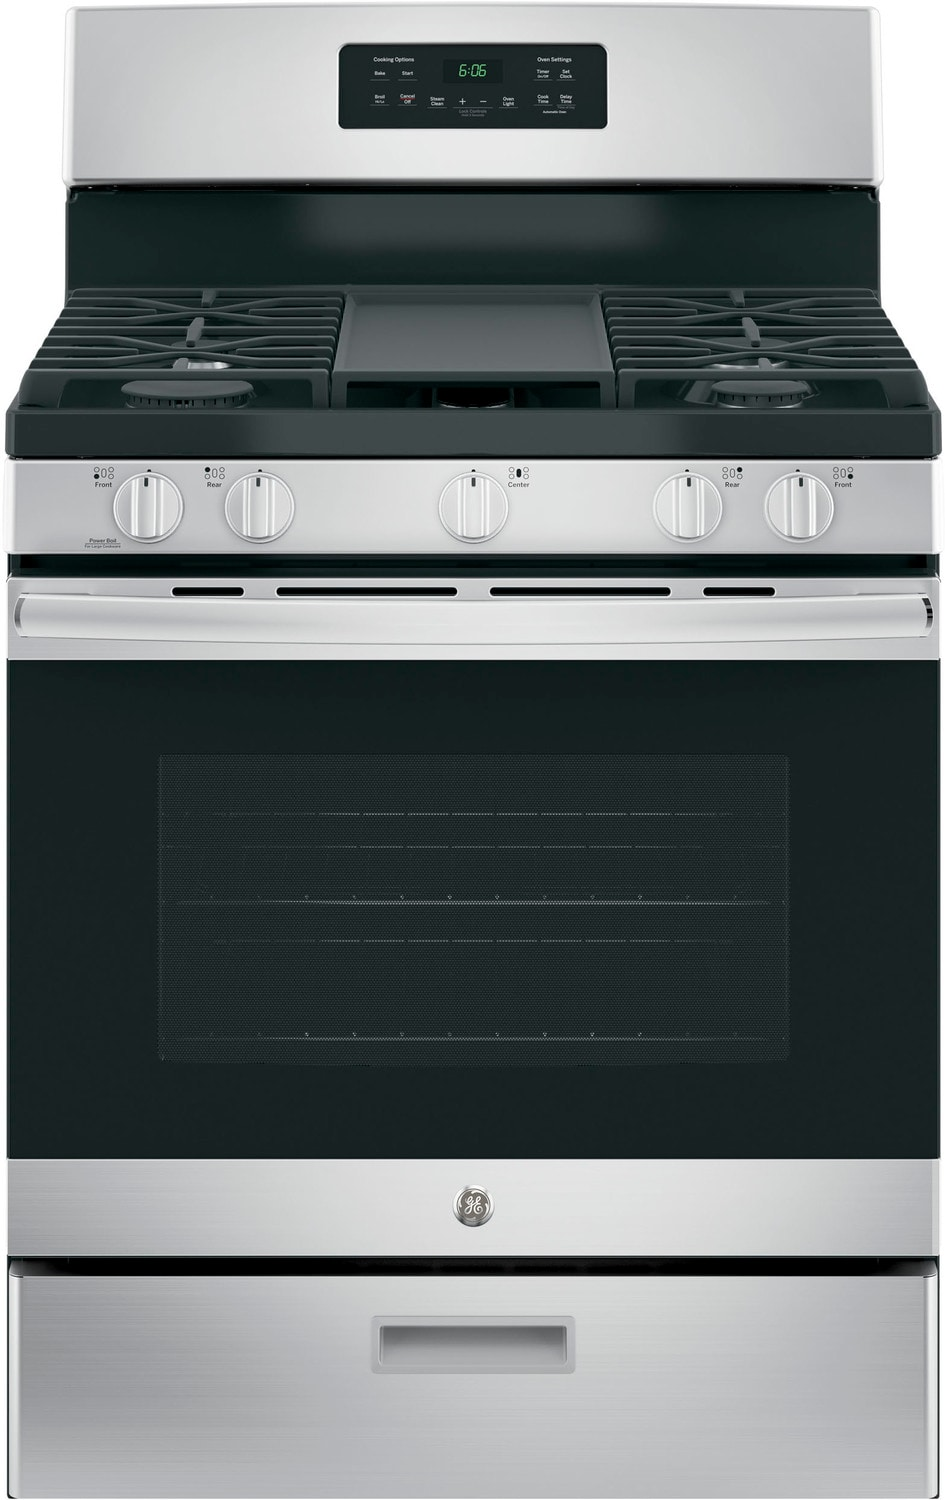 Cooking Products - GE Stainless Steel Freestanding Gas Range (5.0 Cu. Ft.) - JCGBS66SEKSS